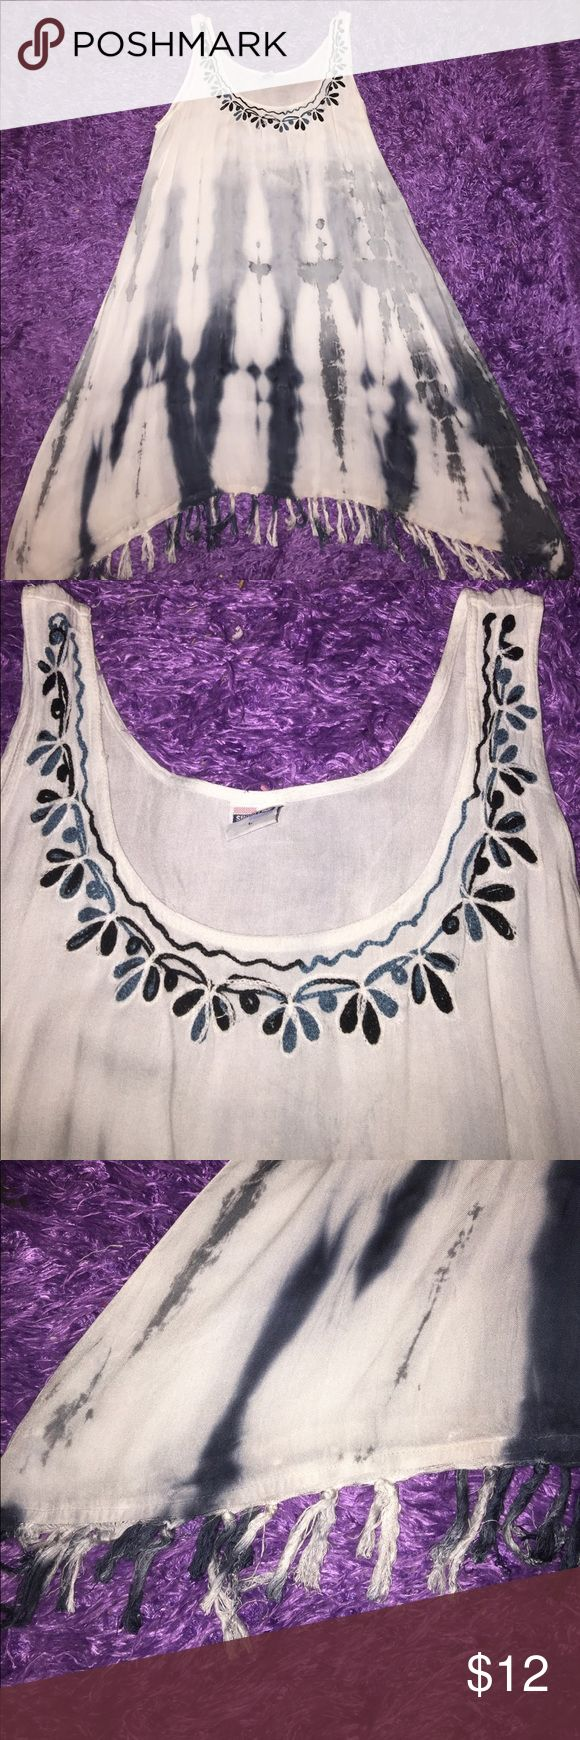 Tie-dye long tunic top with fringe detail Pretty tank style long tunic top with flower embroidery at neckline and tassel hem. Great top to pair with leggings. Great condition. shoreline Tops Tunics